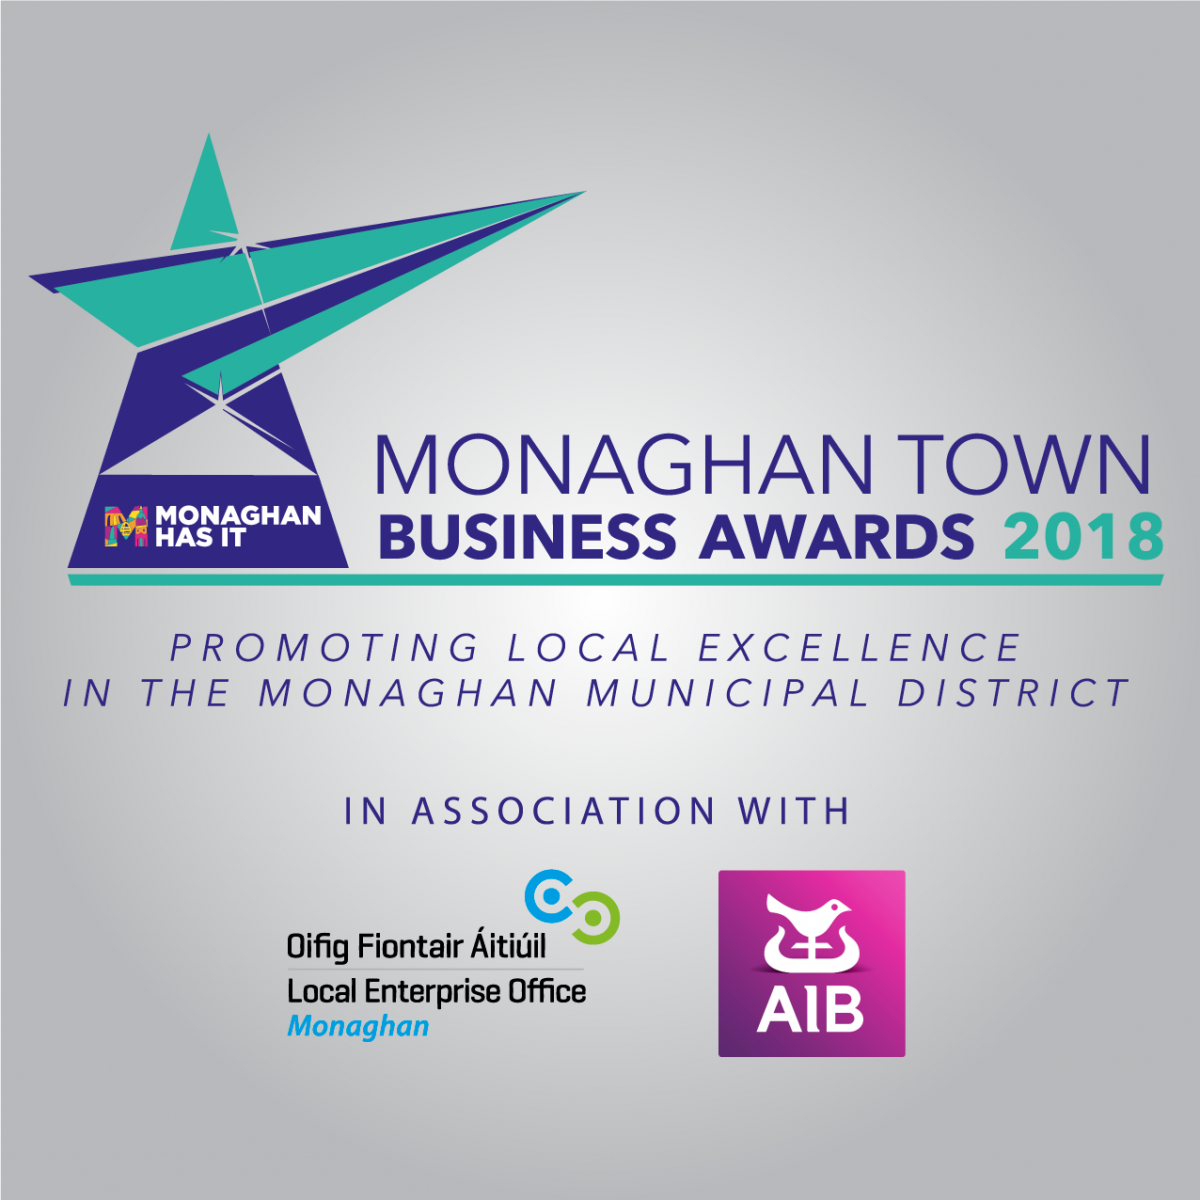 Monaghan Town Business Awards nomination